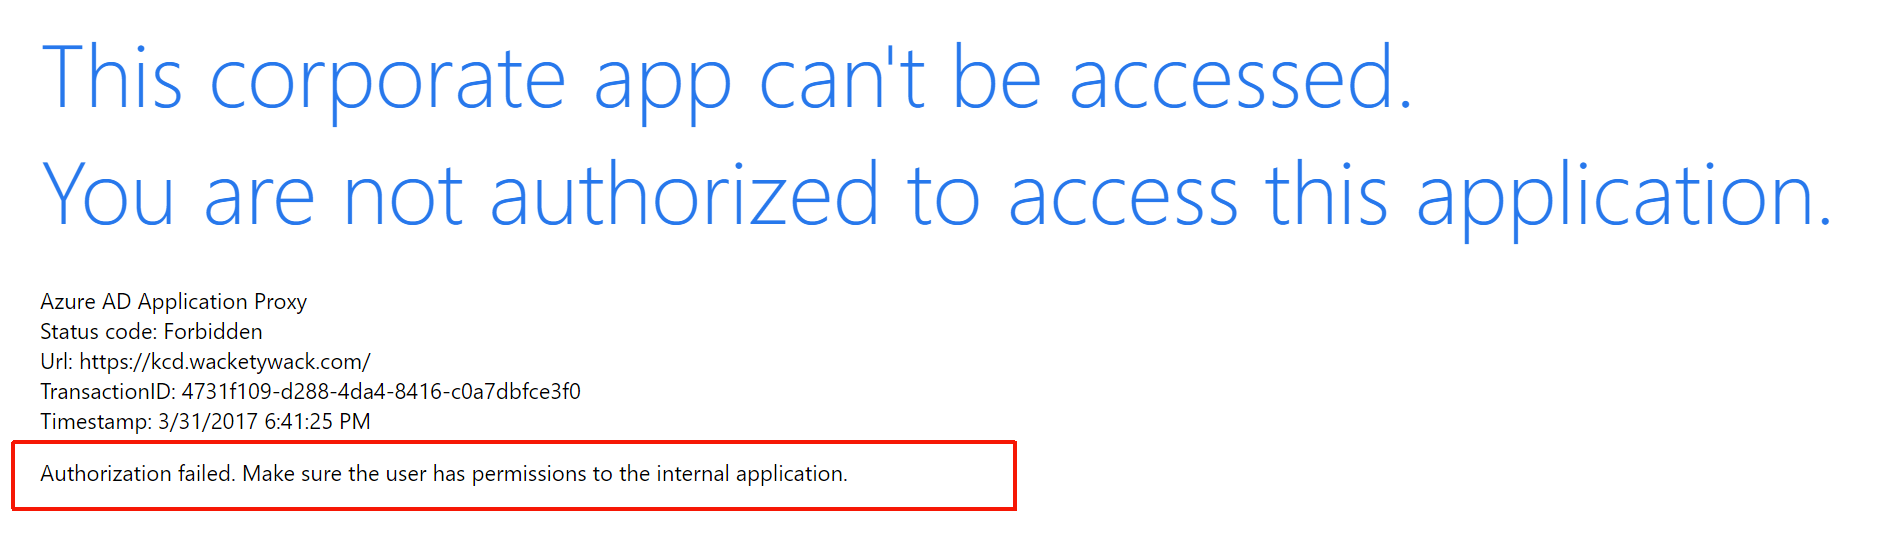 Example: Authorization failed because of missing permissions